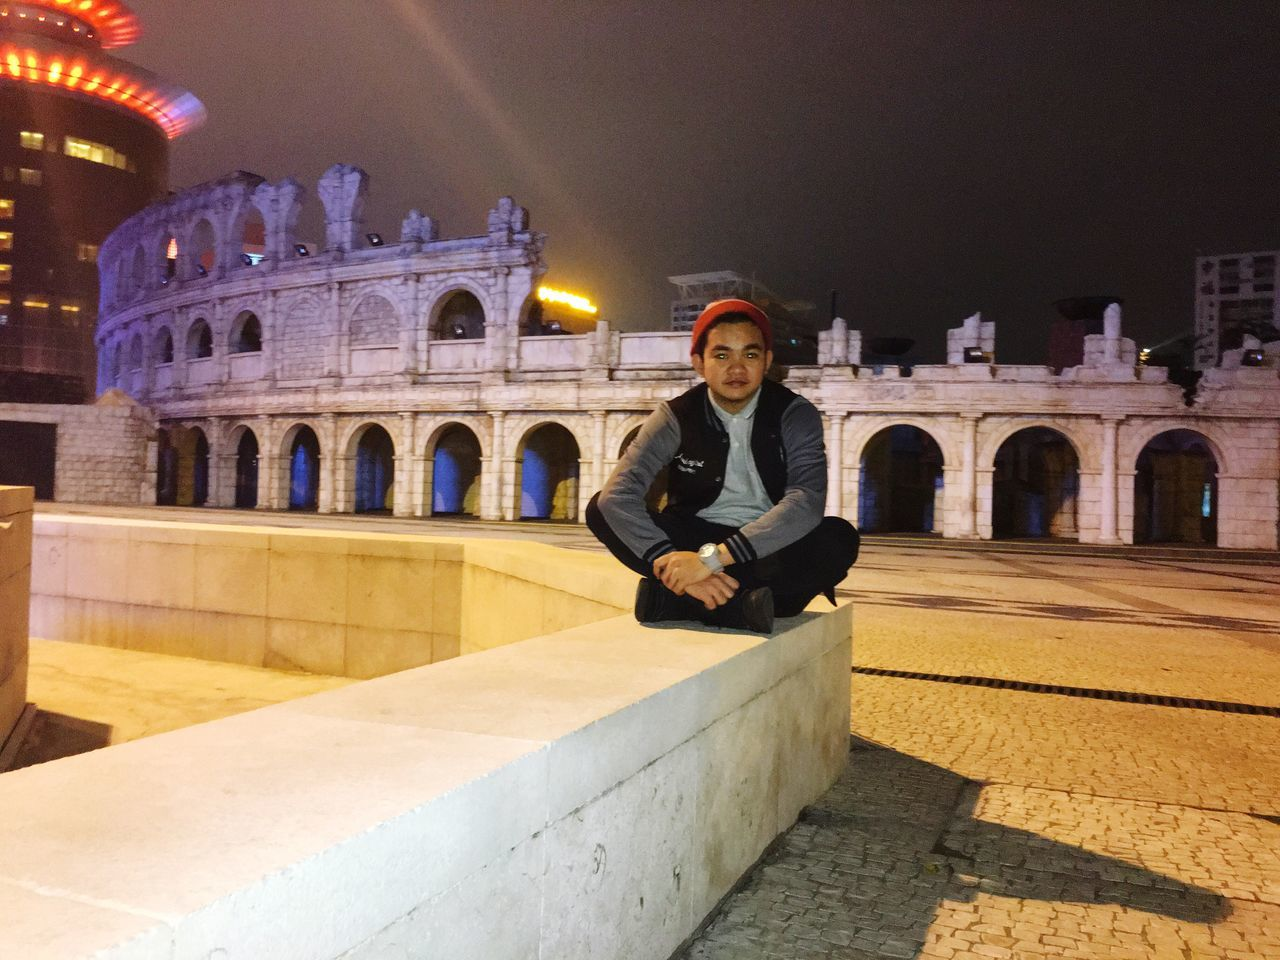 architecture, night, built structure, history, real people, illuminated, lifestyles, tourism, smiling, travel, building exterior, travel destinations, portrait, leisure activity, arch, young women, outdoors, looking at camera, mature adult, young adult, one person, city, happiness, full length, ancient civilization, sky, adult, people